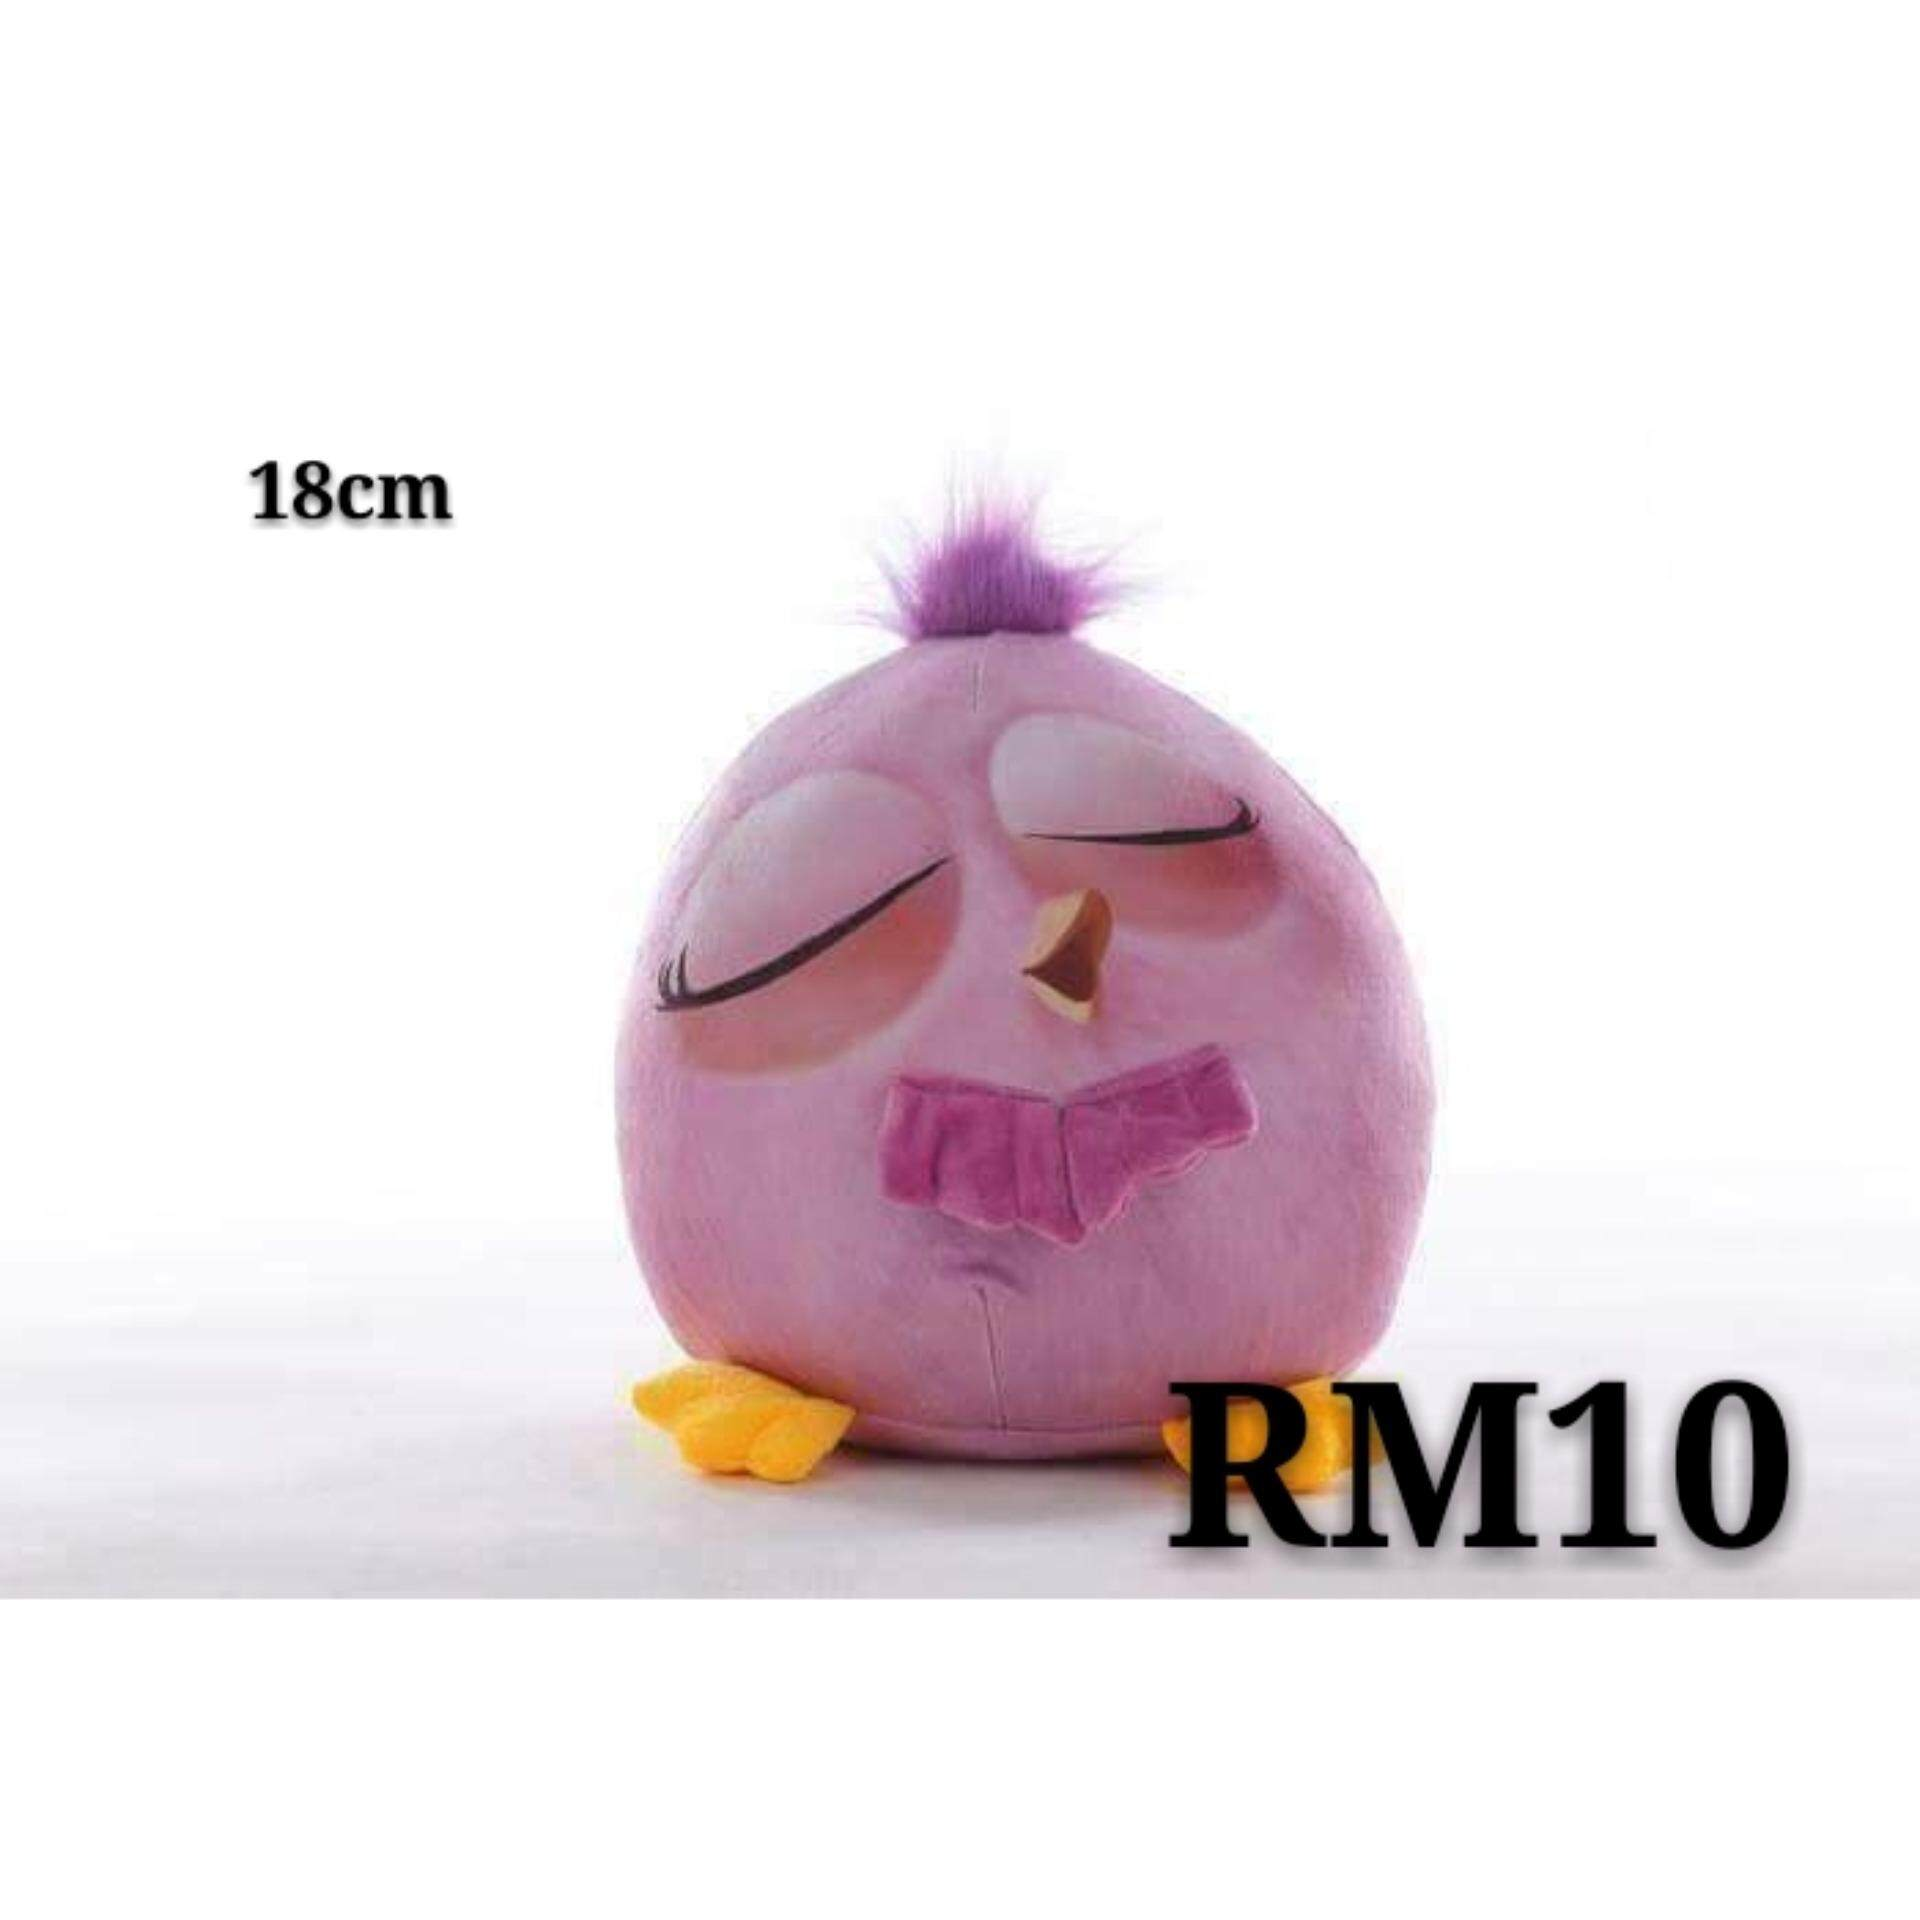 18cm Hatchling Angry Bird Pillow